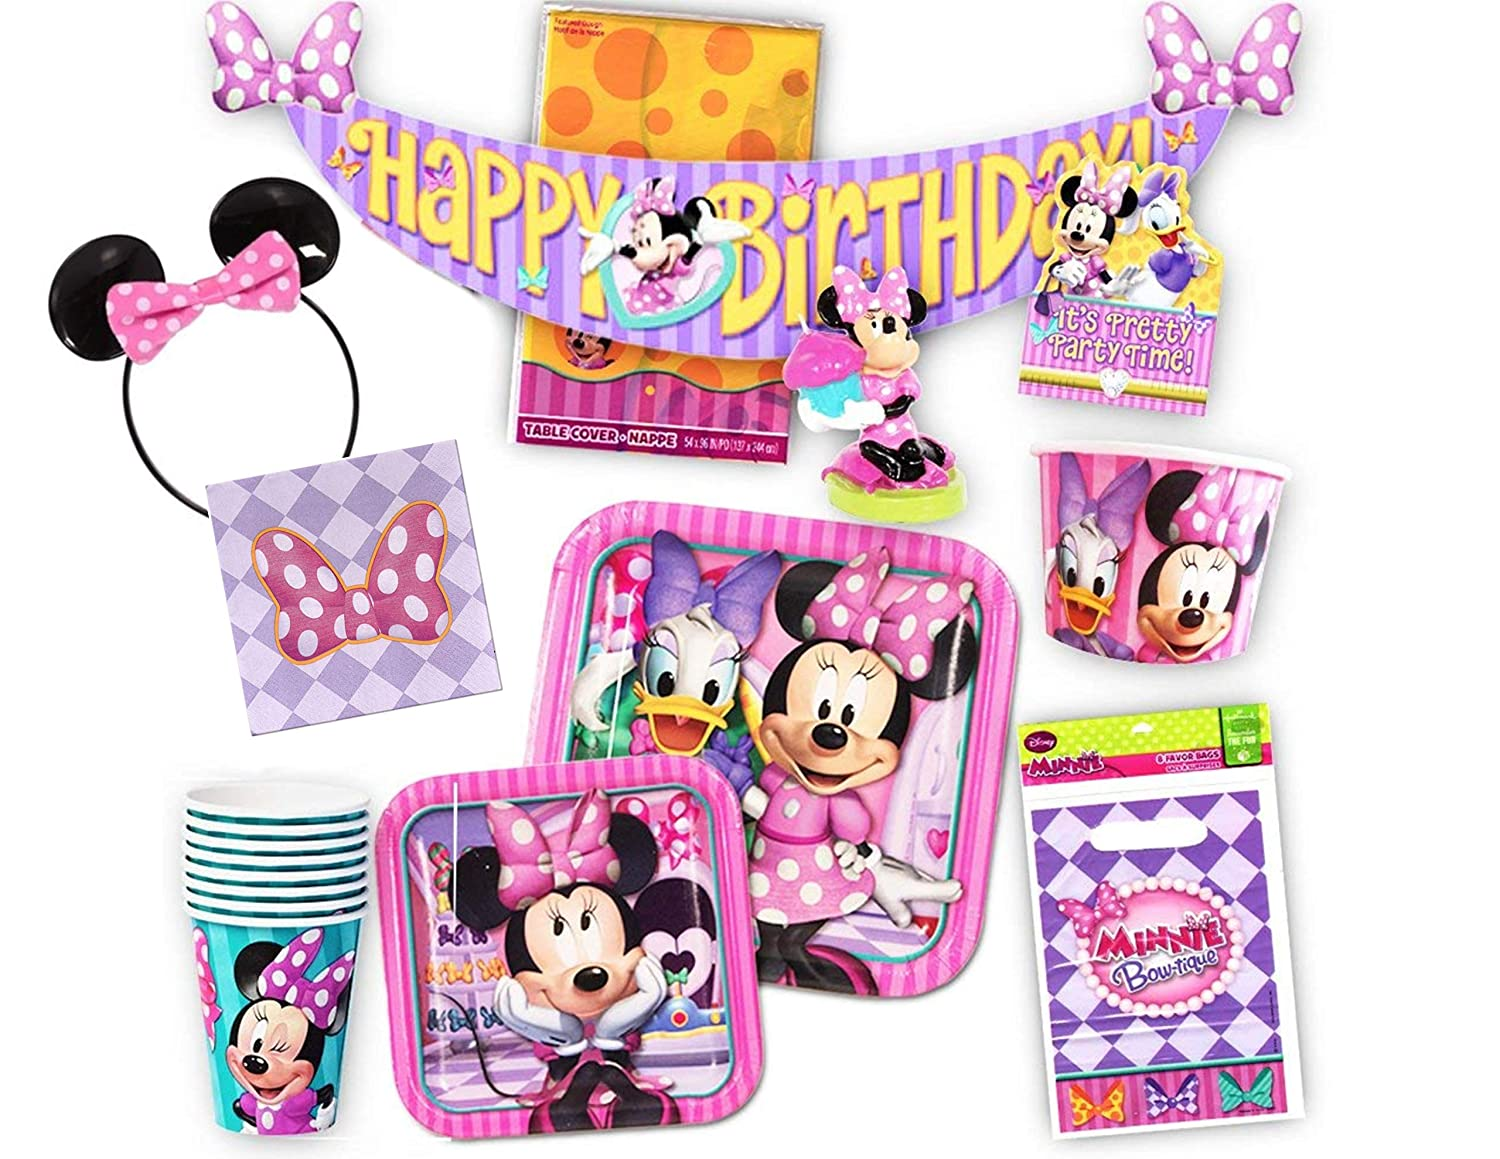 Minnie Mouse Party Supplies for 8 Guests